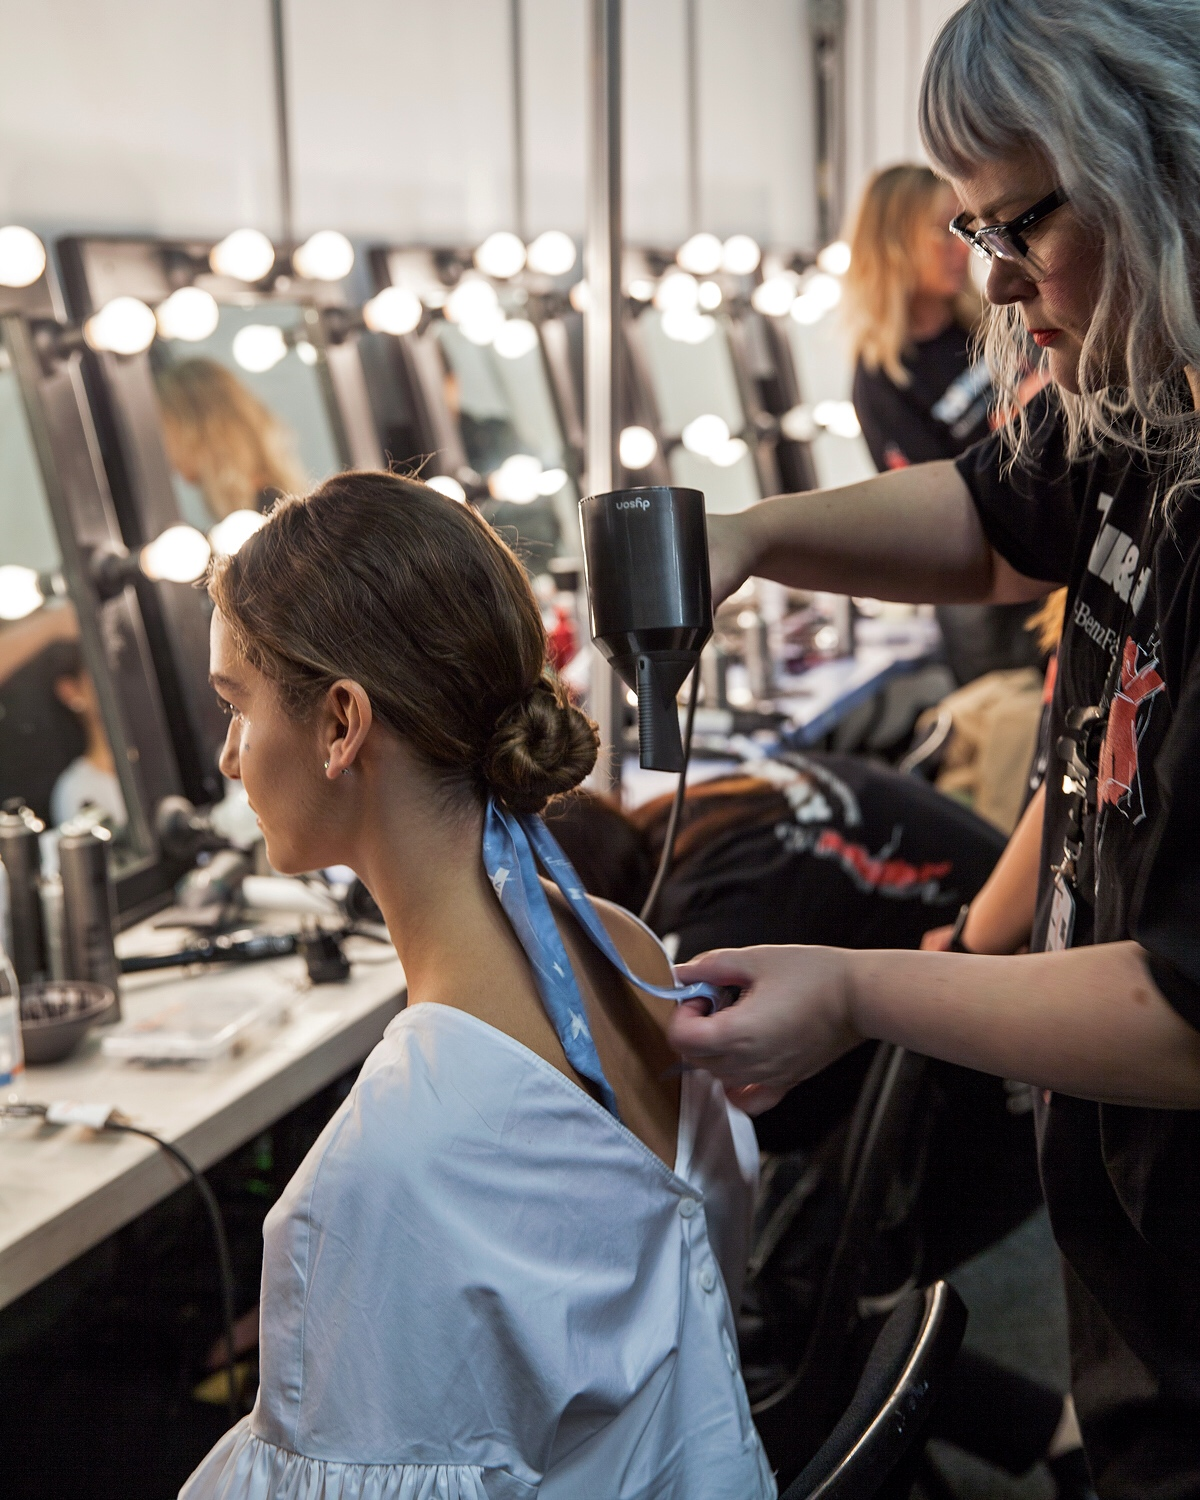 Backstage with Dyson Hair at the Leo and Lin show from MBFWA 2018 using the Dyson Supersonic